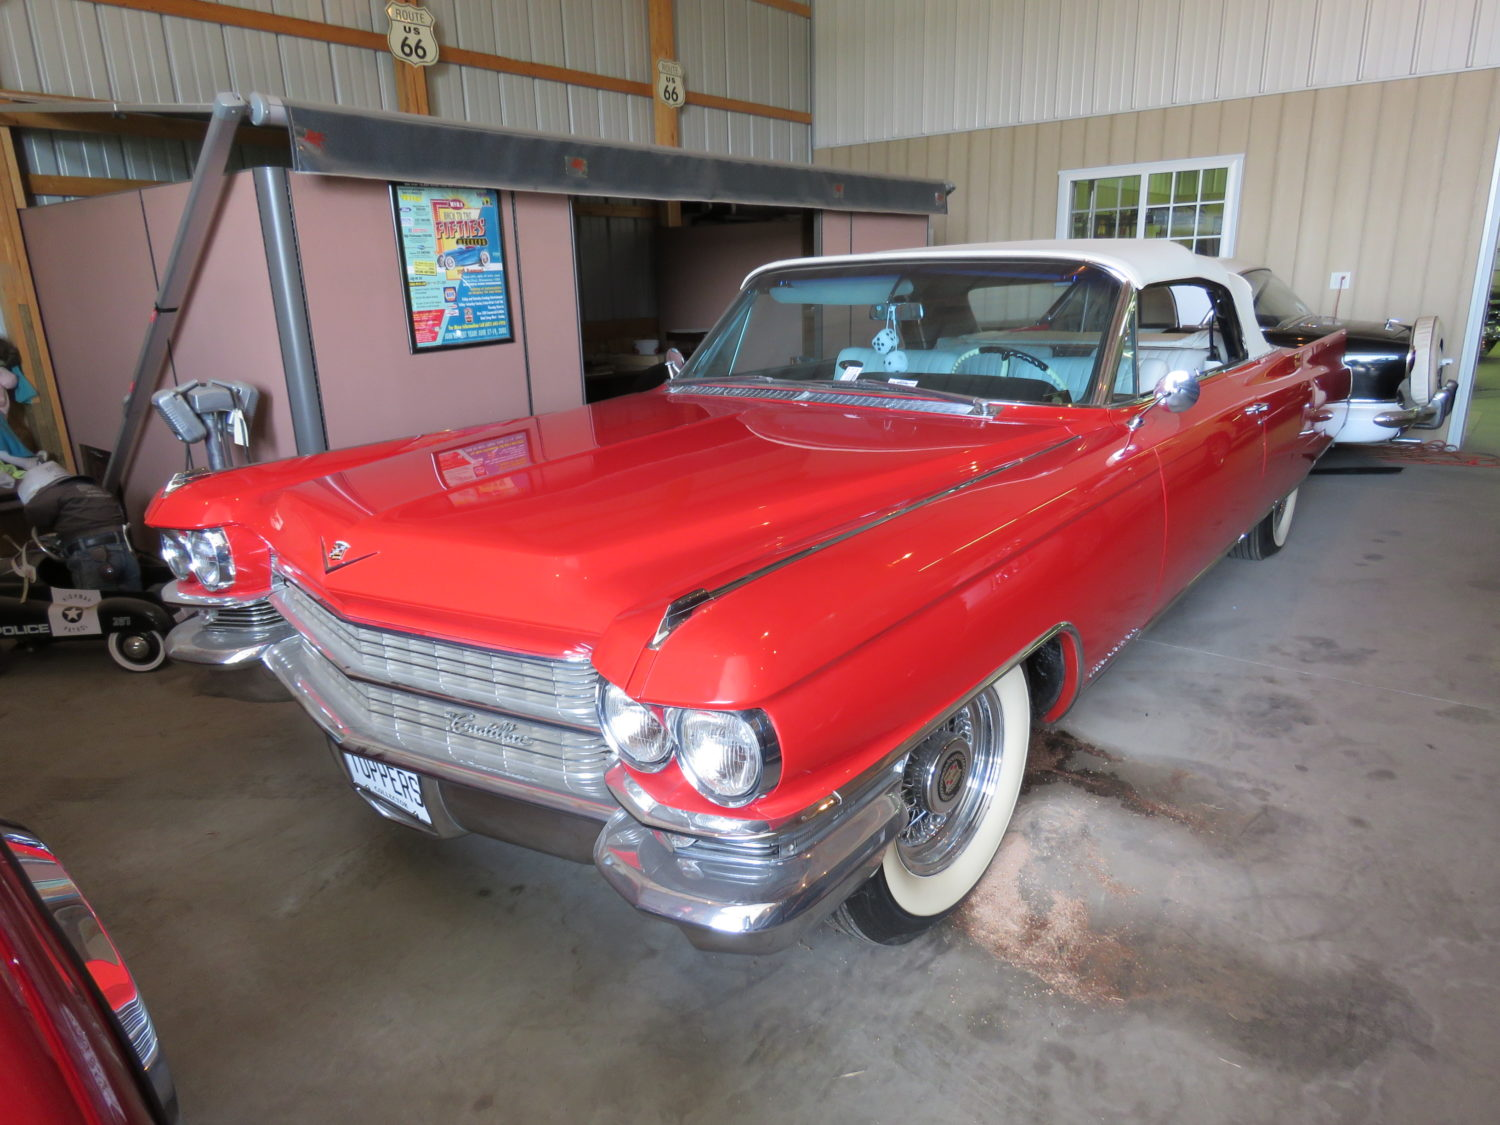 FABULOUS COLLECTOR CARS, MEMORABILIA, & MORE AT AUCTION-JERRY JOHNSON ESTATE! - image 5